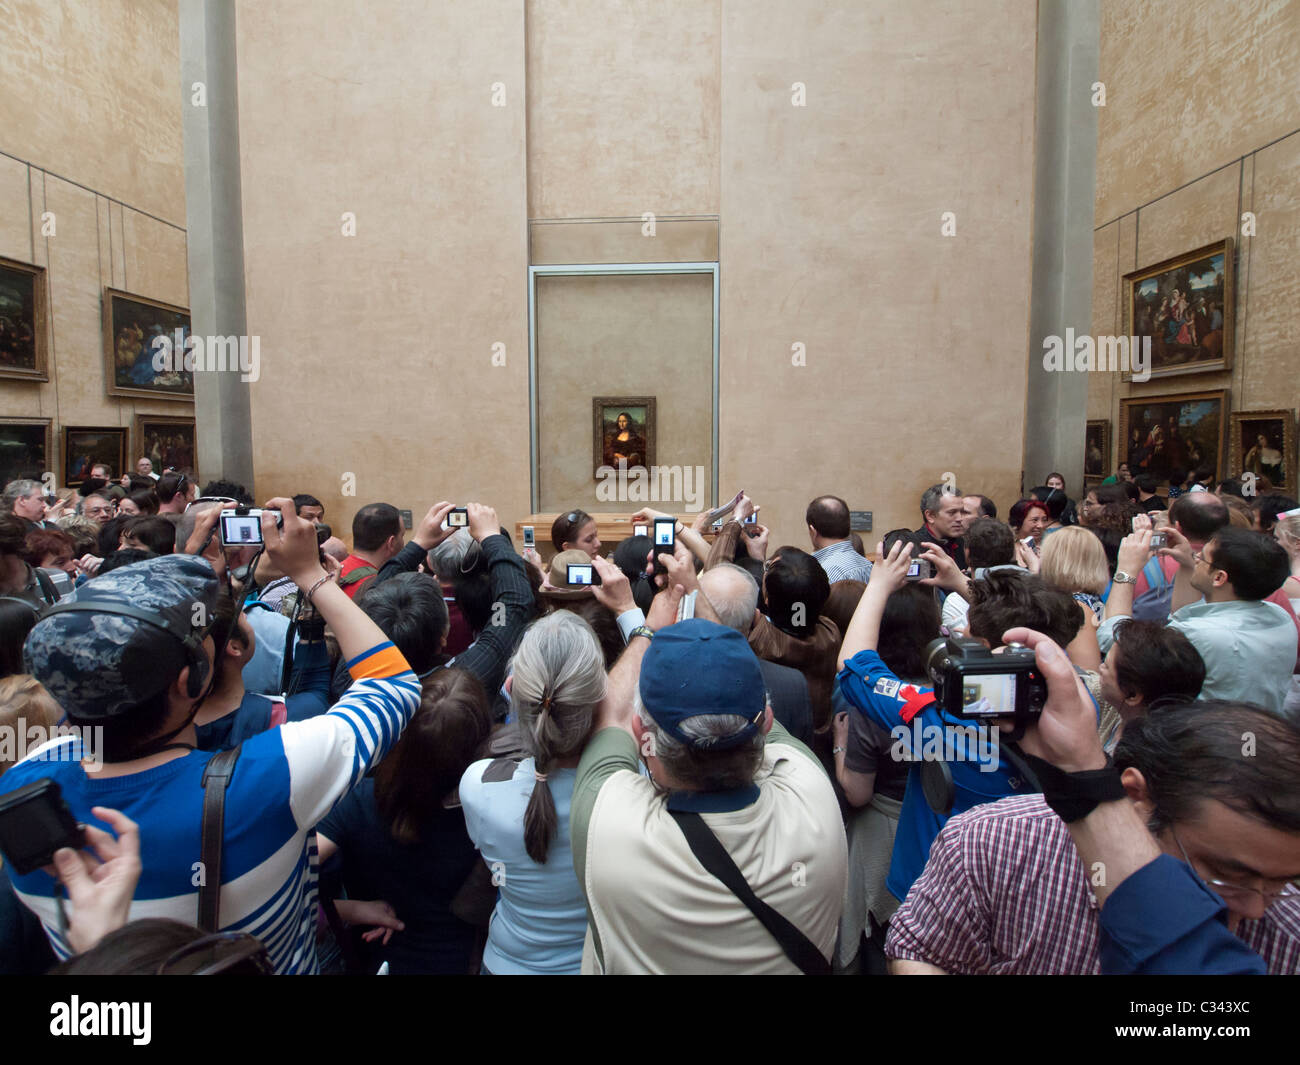 Huge crowds of tourists trying to see Mona Lisa painting by Leonardo da Vinci at The Louvre museum in Paris France - Stock Image